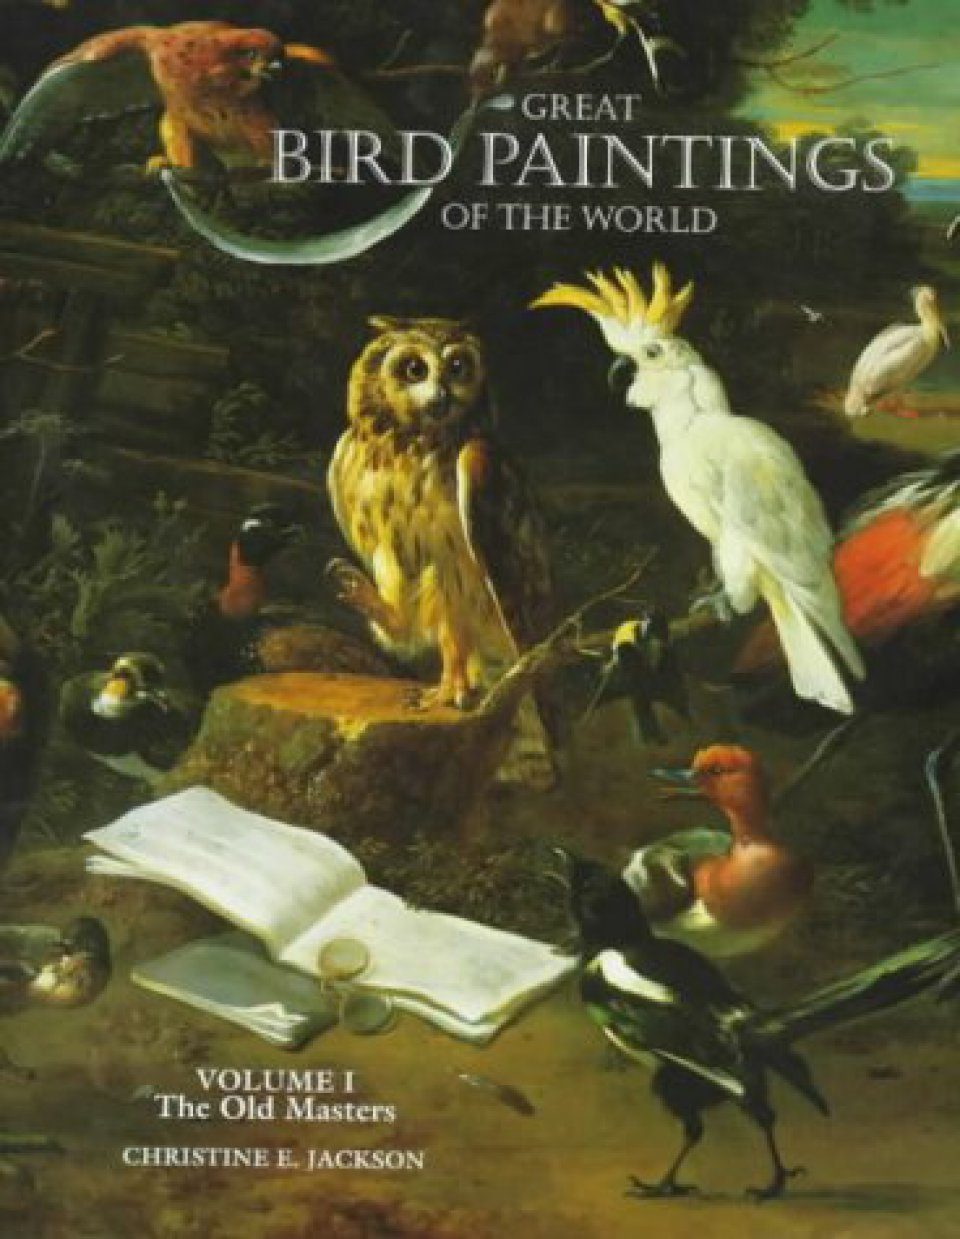 Great Bird Paintings of the World, Volume 1